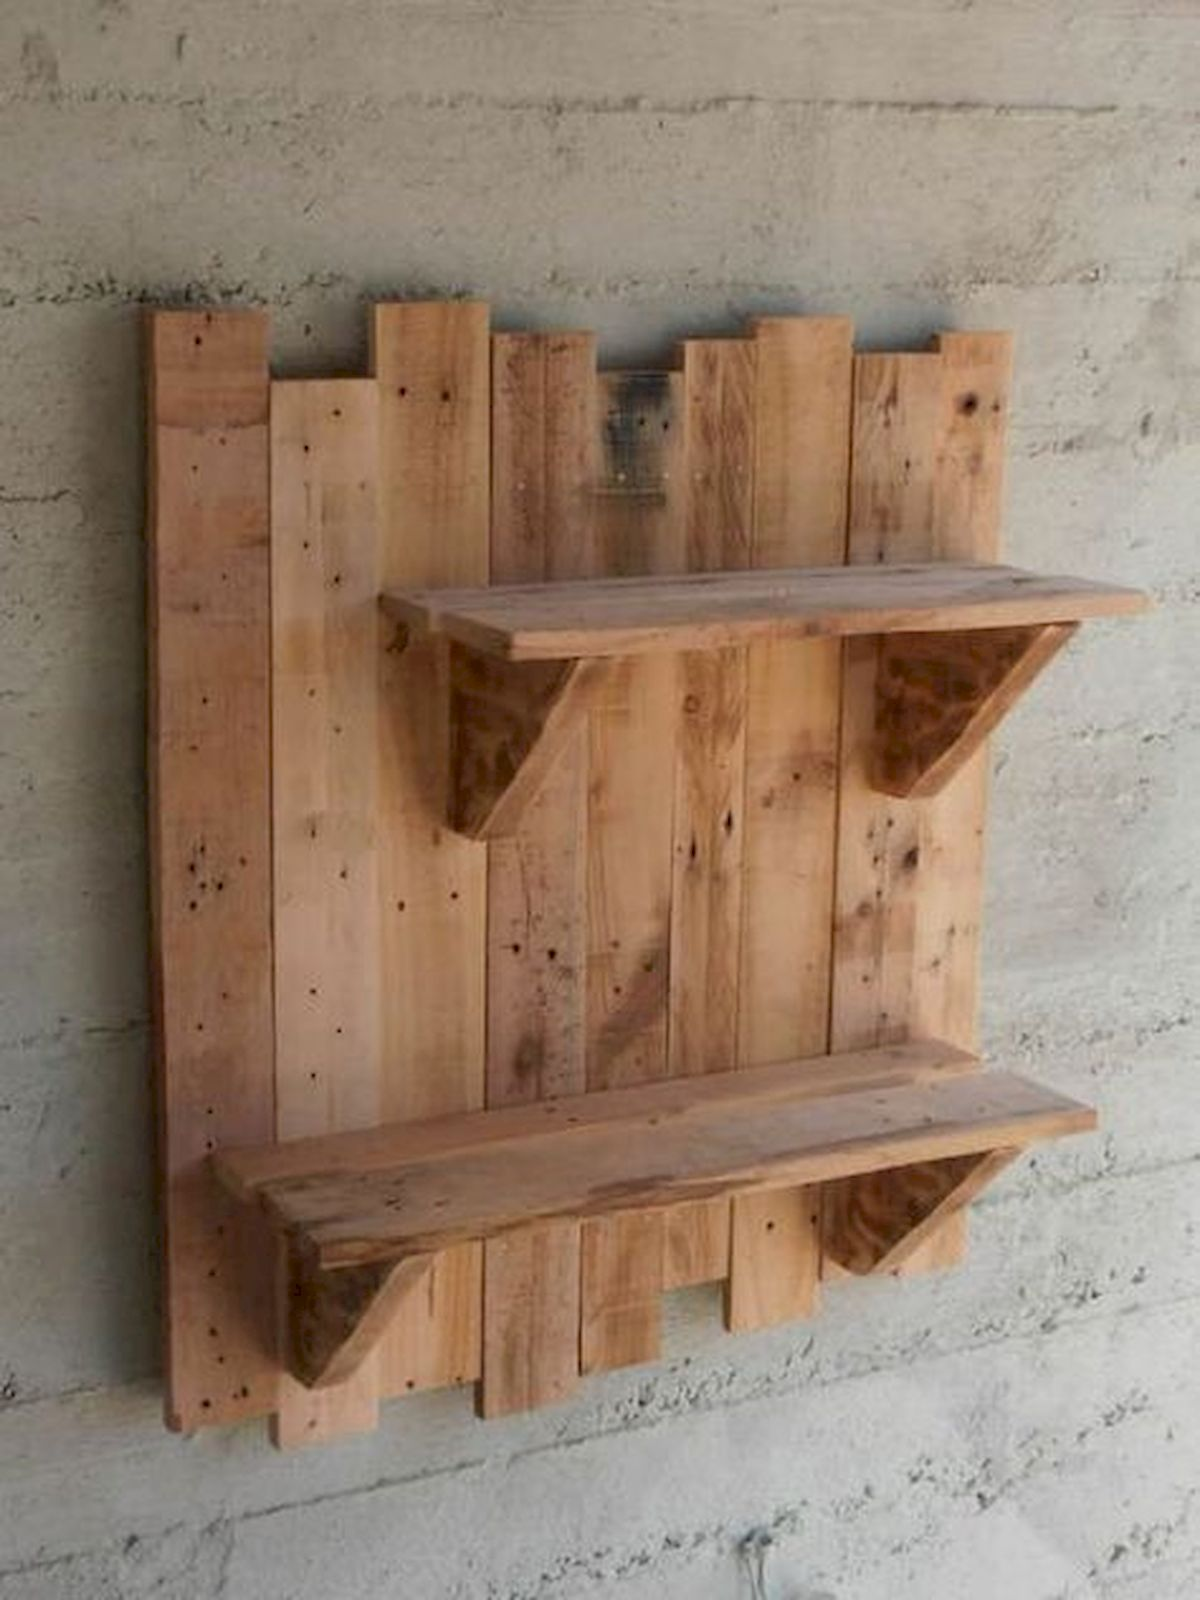 60 Easy DIY Wood Projects for Beginners (29)